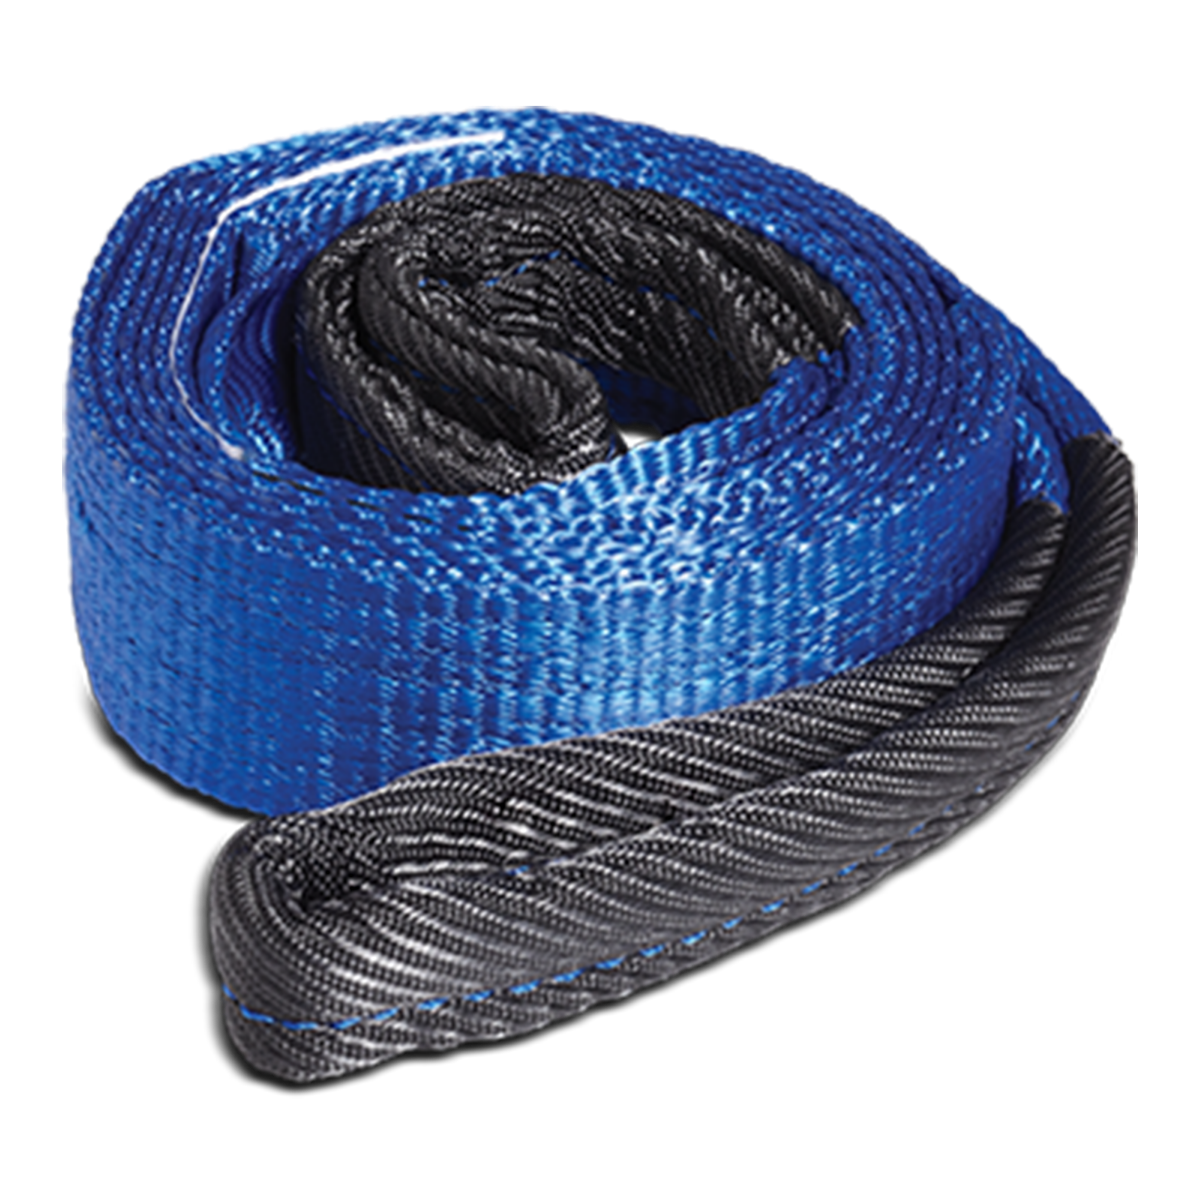 To help in recovering your vehicle, we offer quality snatch straps from VRS and others.